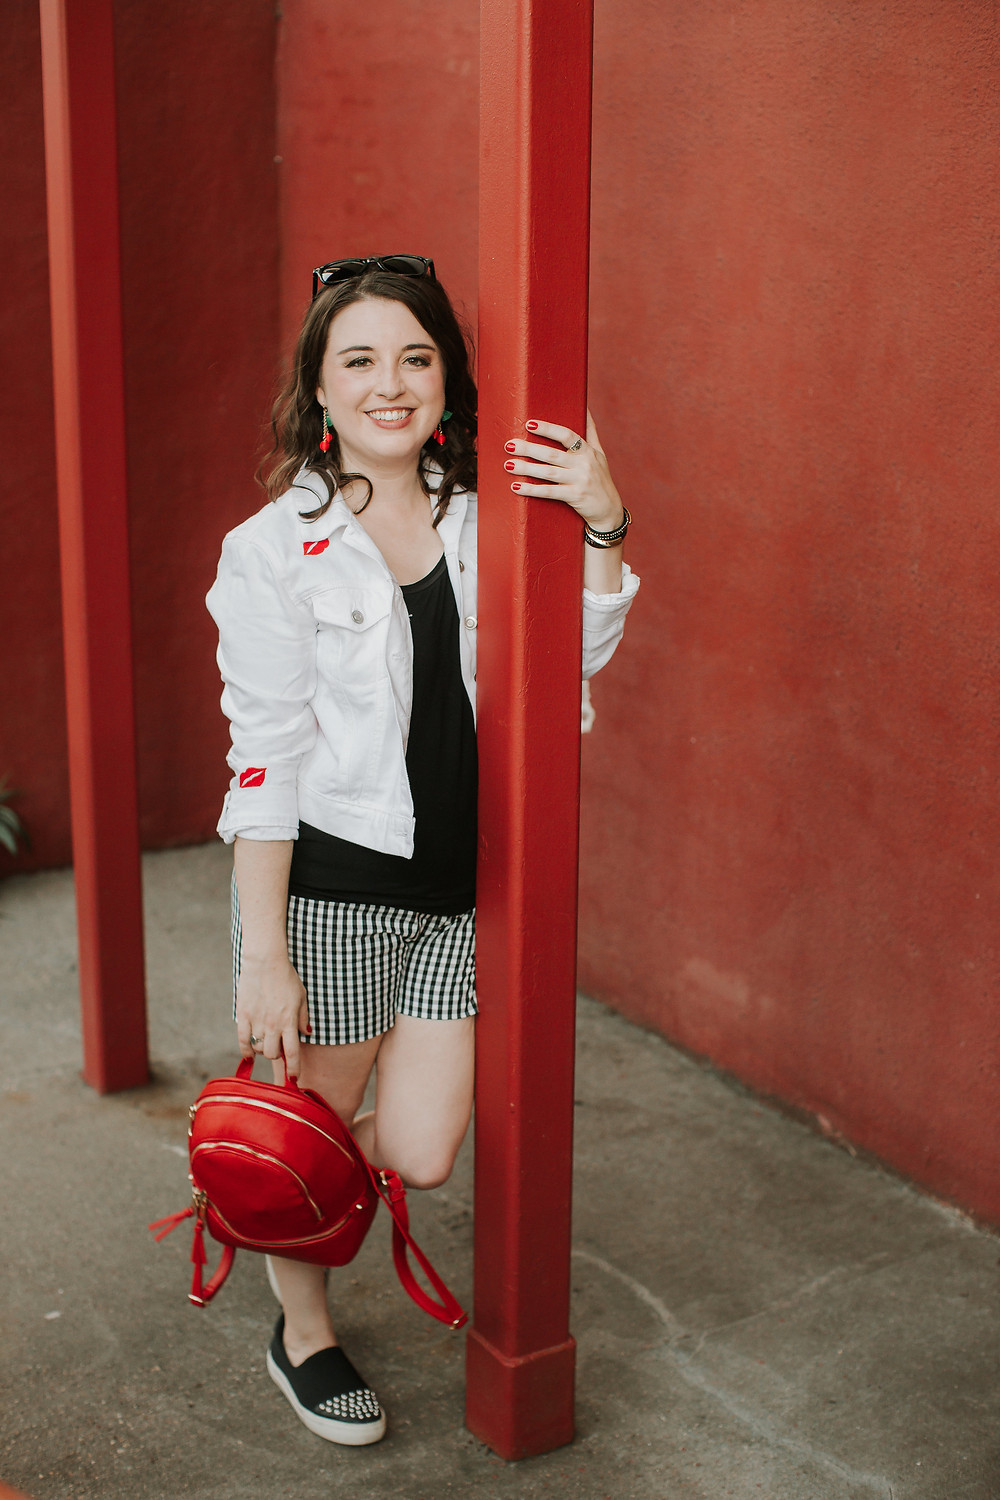 Austin TX Personal Stylist shares best shorts if you're over 30